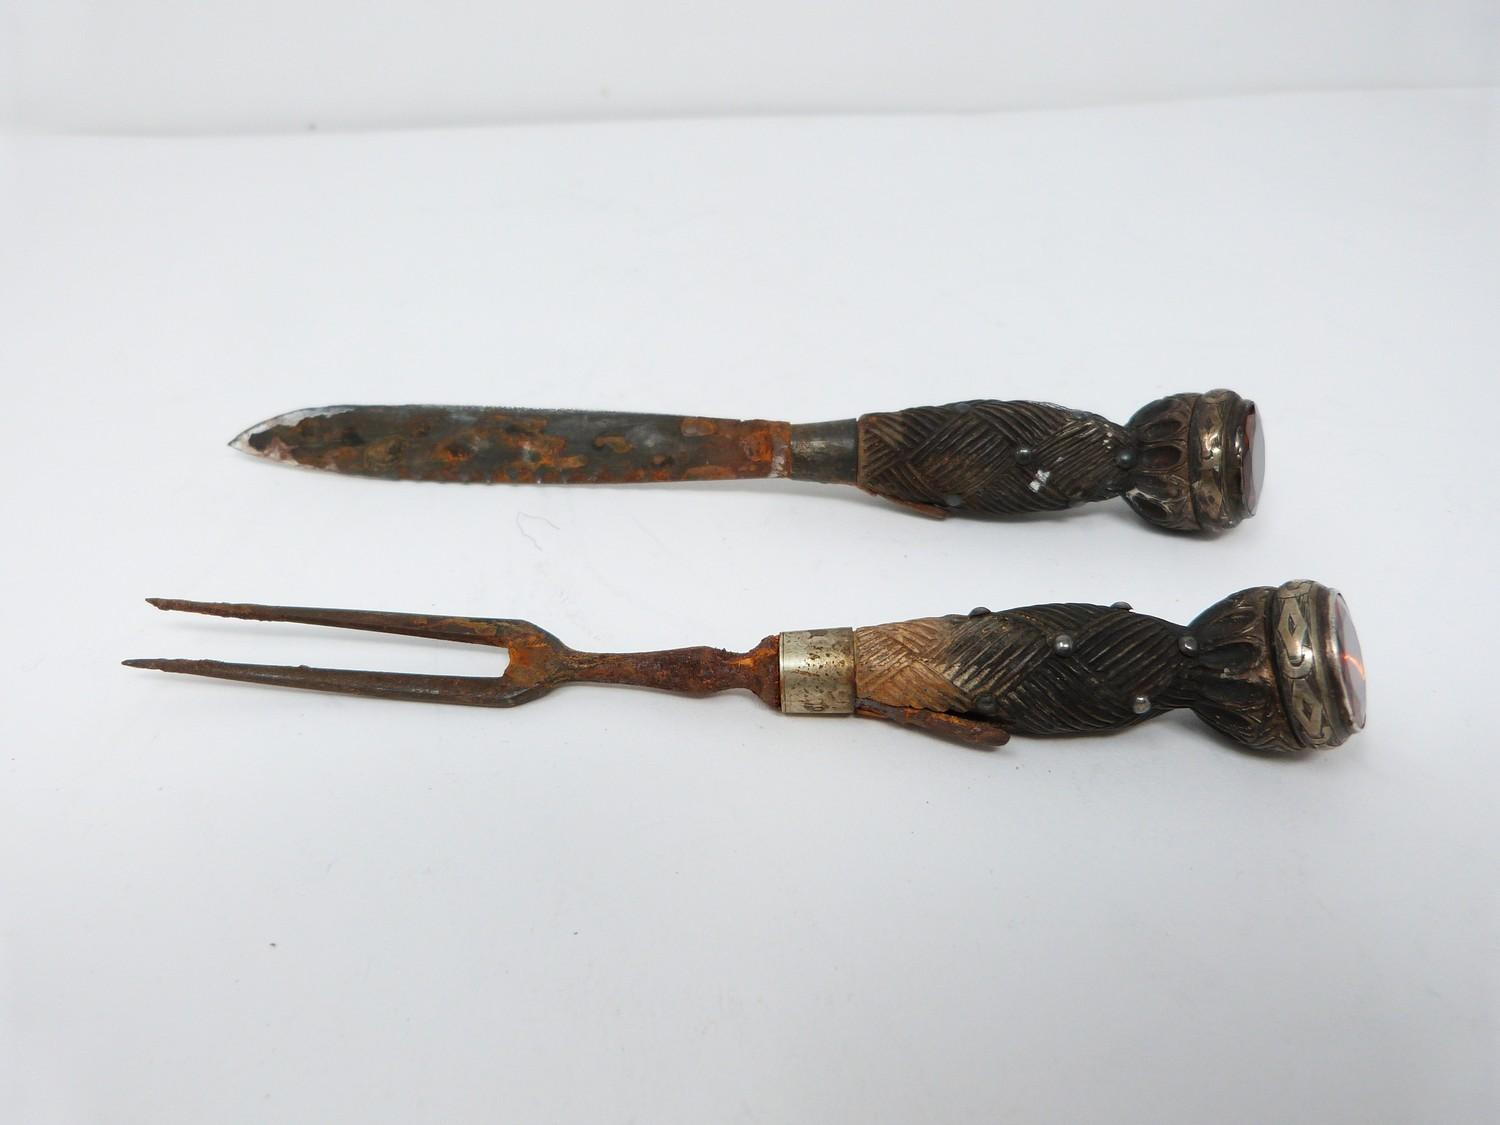 An antique white metal and bog oak Scottish military standard dirk by Joseph Rodgers & Sons who were - Image 5 of 22